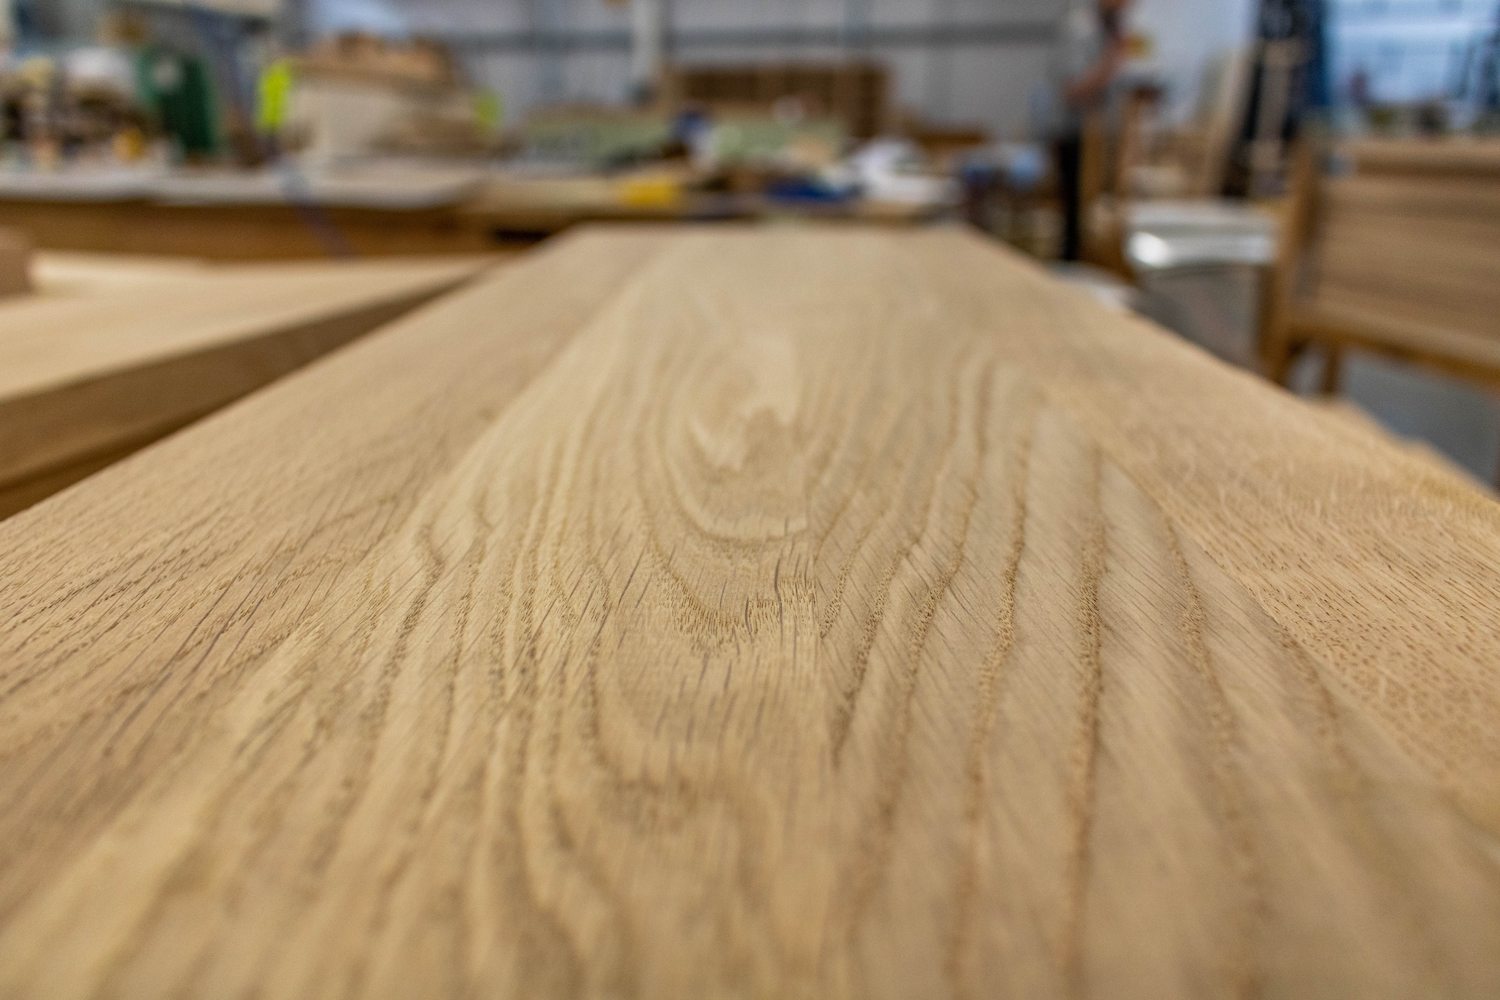 wood panel in k&d joinery workshop